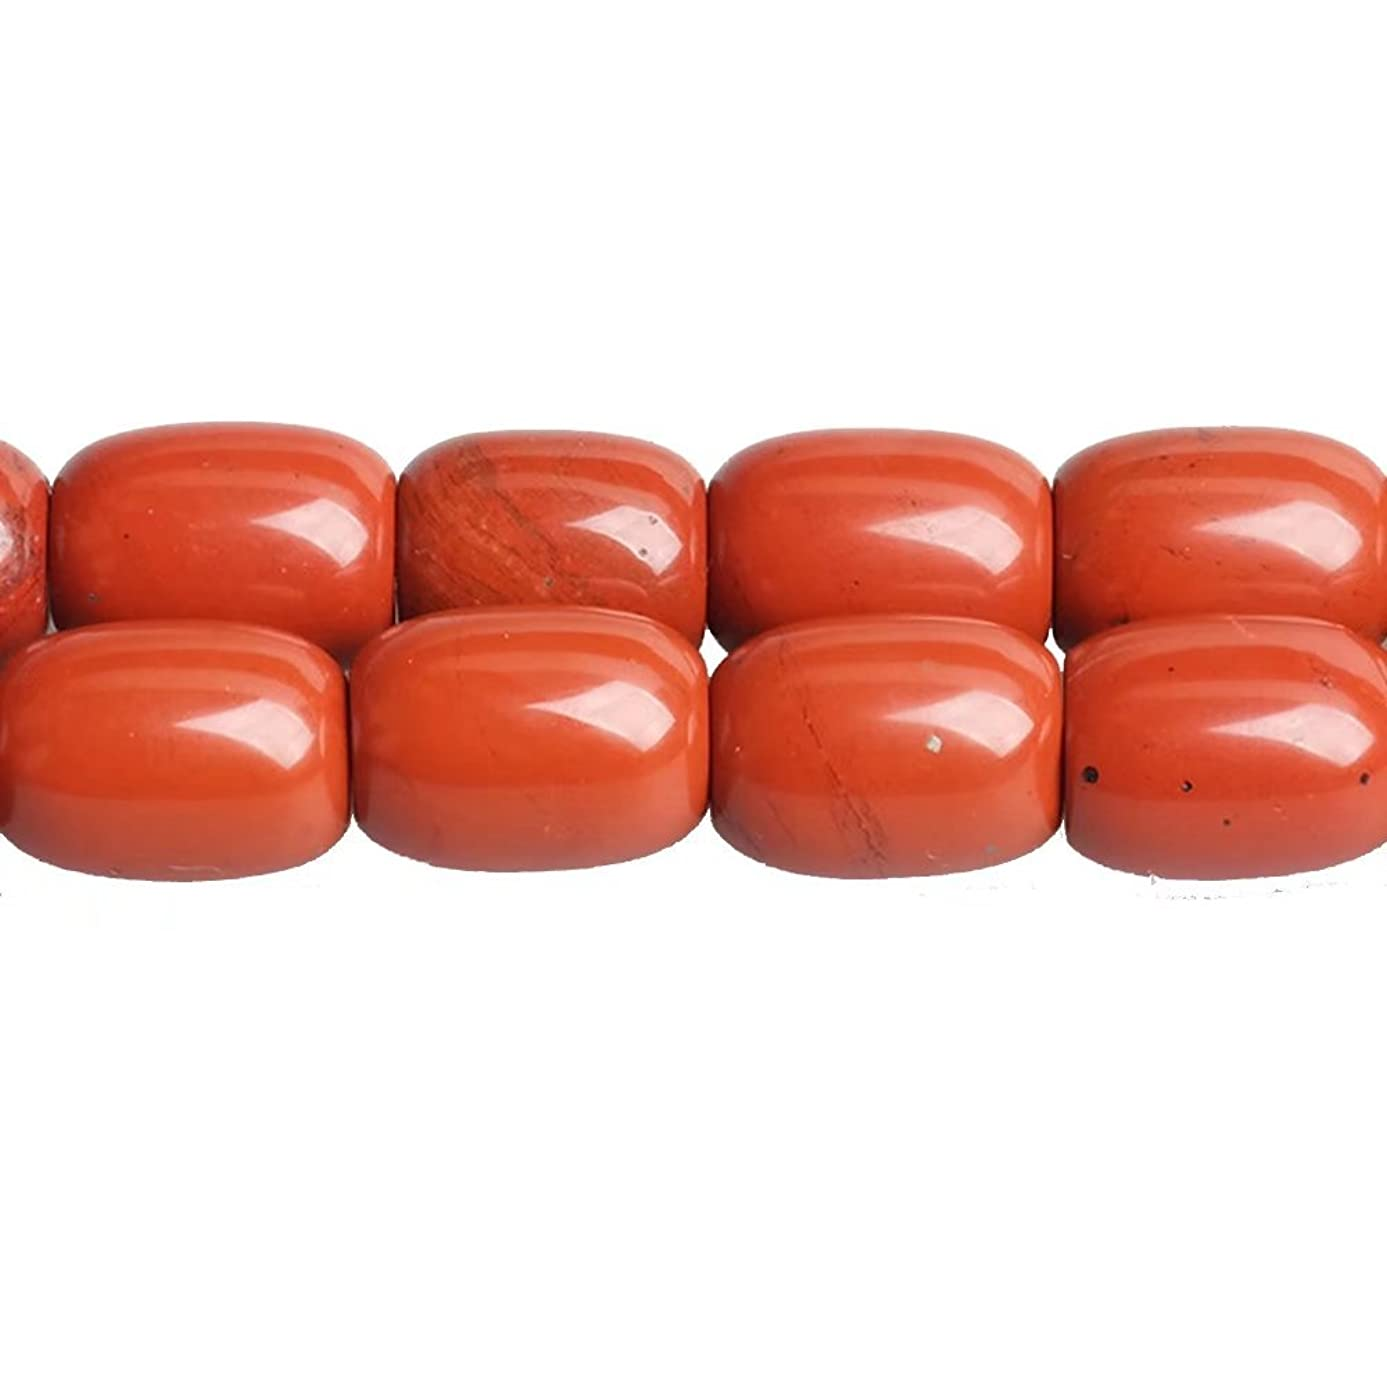 Barrel Shaped 1318mm Red Jasper Stone Loose Beads Lots Supply for DIY Jewelry Craft Beading Sold by One Strand 15 Inch Apx 20 Pcs